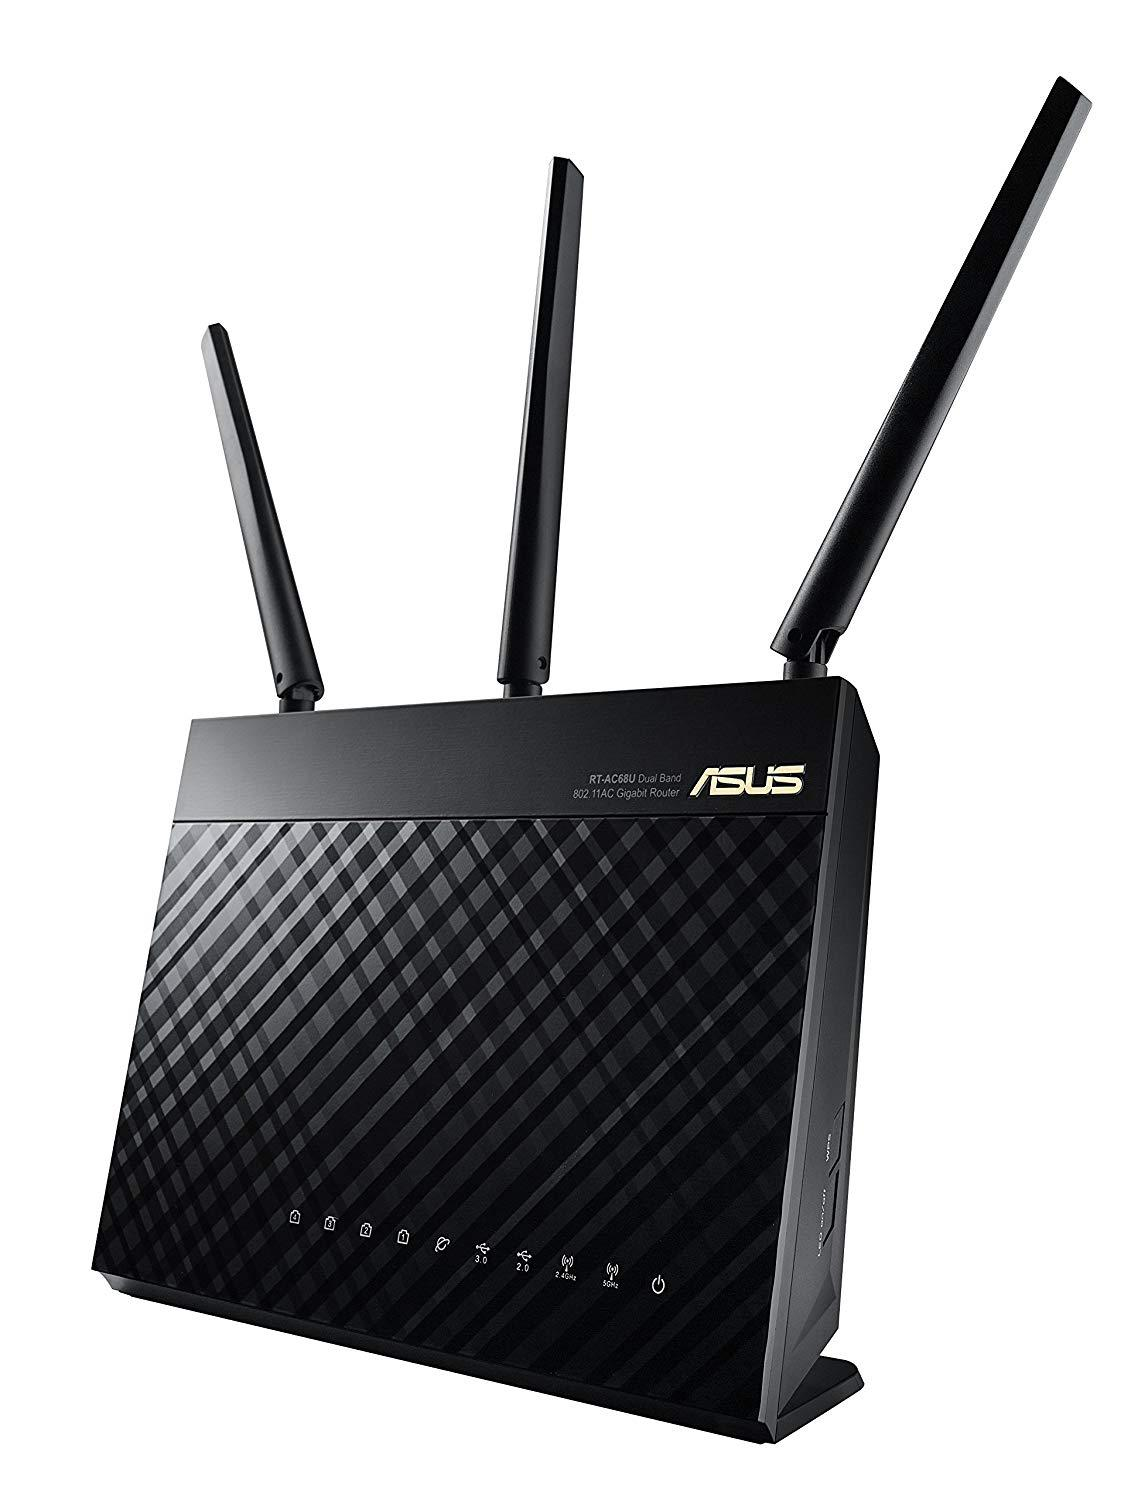 ASUS RT AC68U Whole Home Dual Band AiMesh WI FI Router Upgradable Merlin AC1900 1900 Mbps AiProtection Network Security by Trend|Wireless Routers| |  - title=